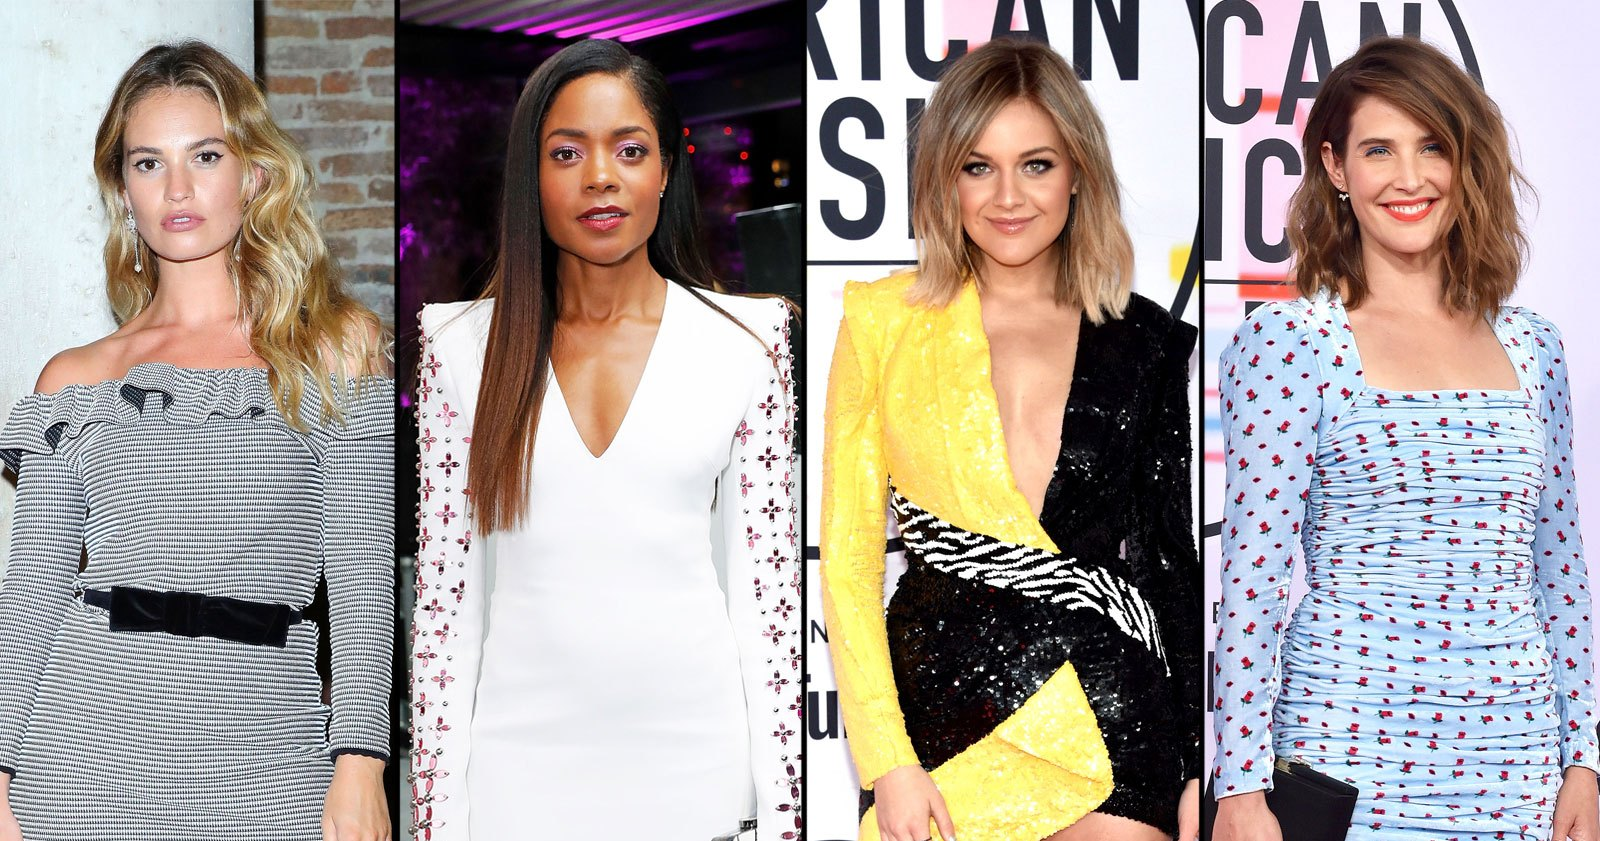 Short Dress, Long Sleeves! See 10 Top Celeb Red Carpet Trendy Party Dresses